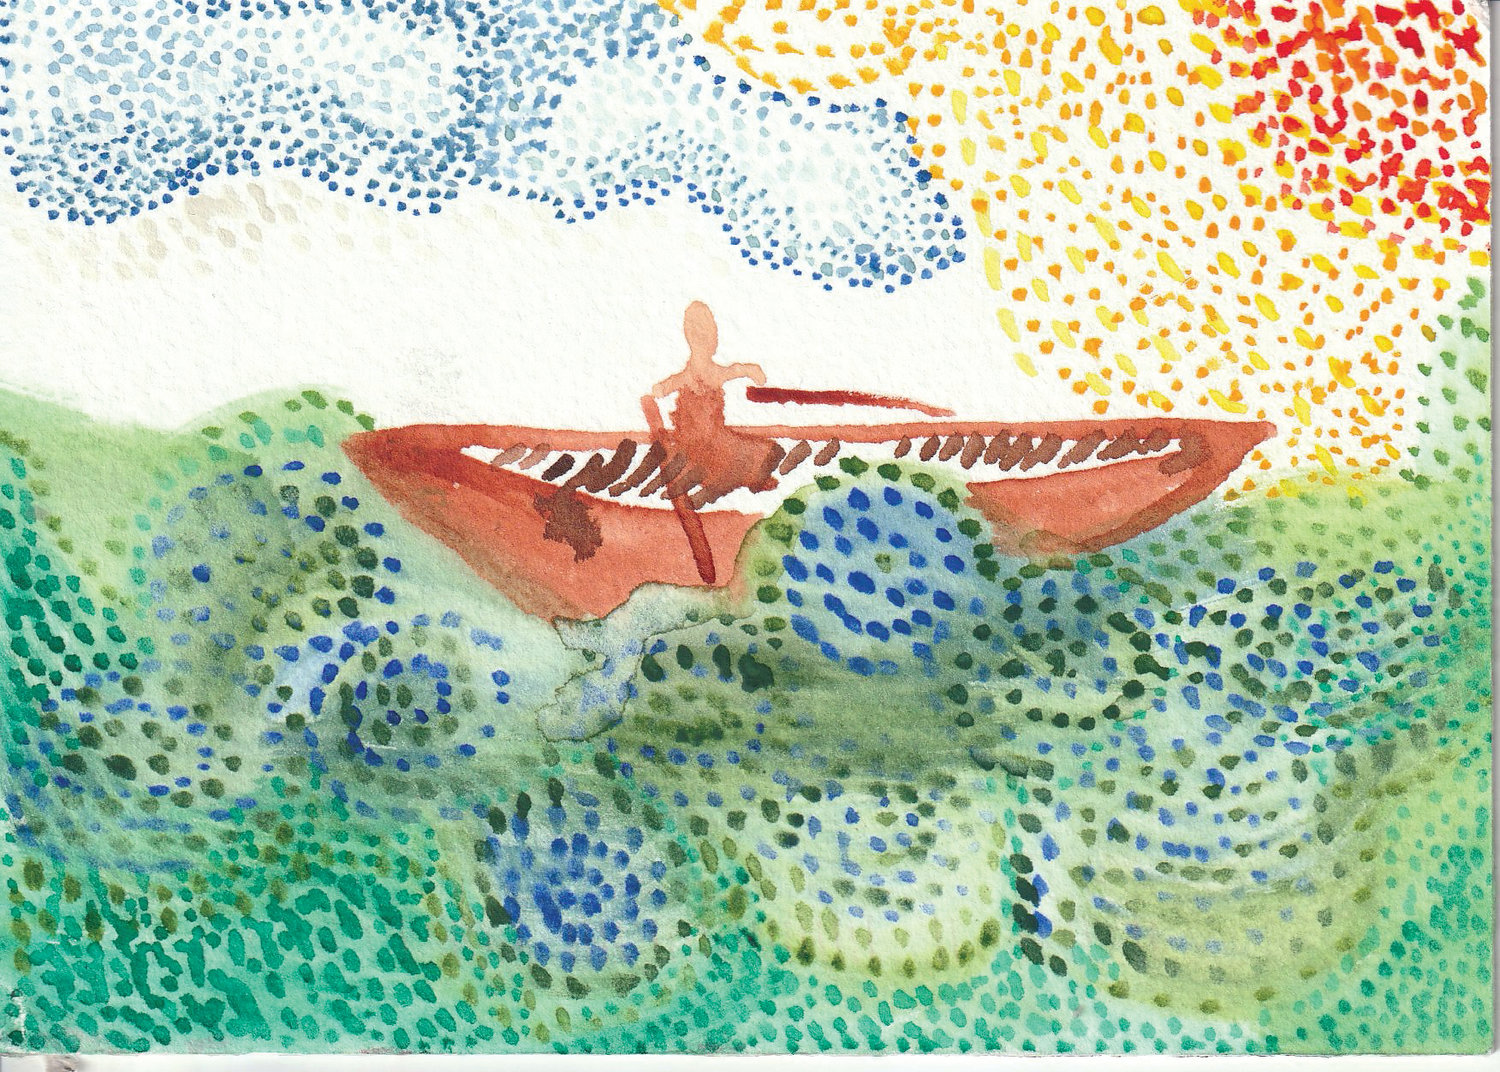 Aleta Greenway's postcard depicts a person in a boat.